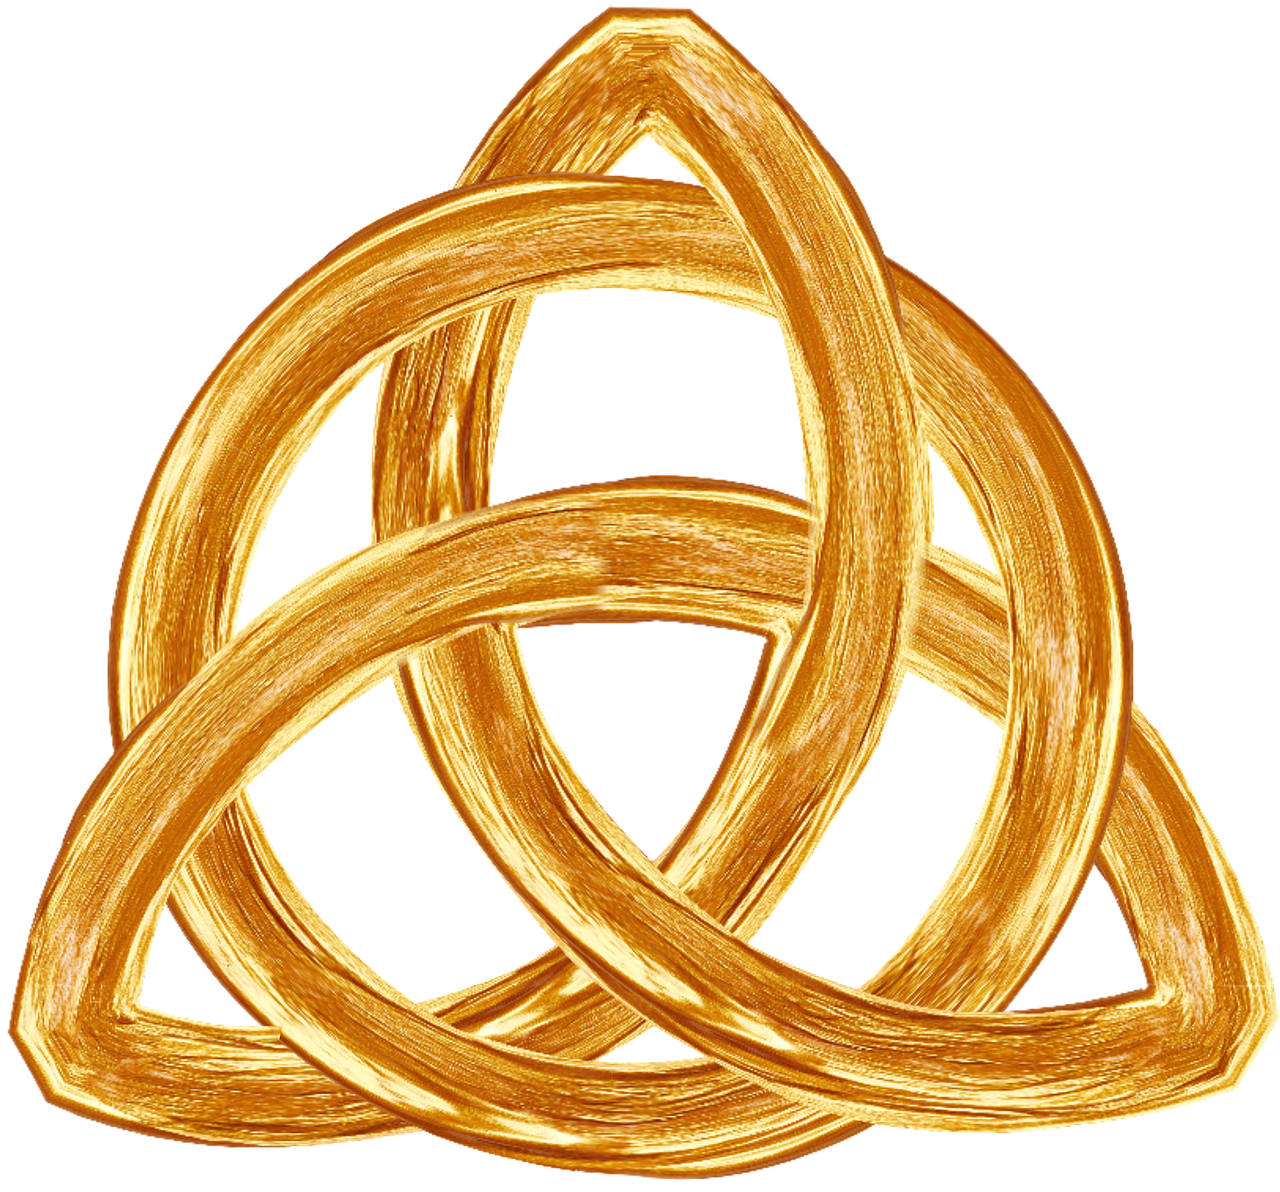 Trinity,gold,symbol,trefoil,religion - free image from needpix.com